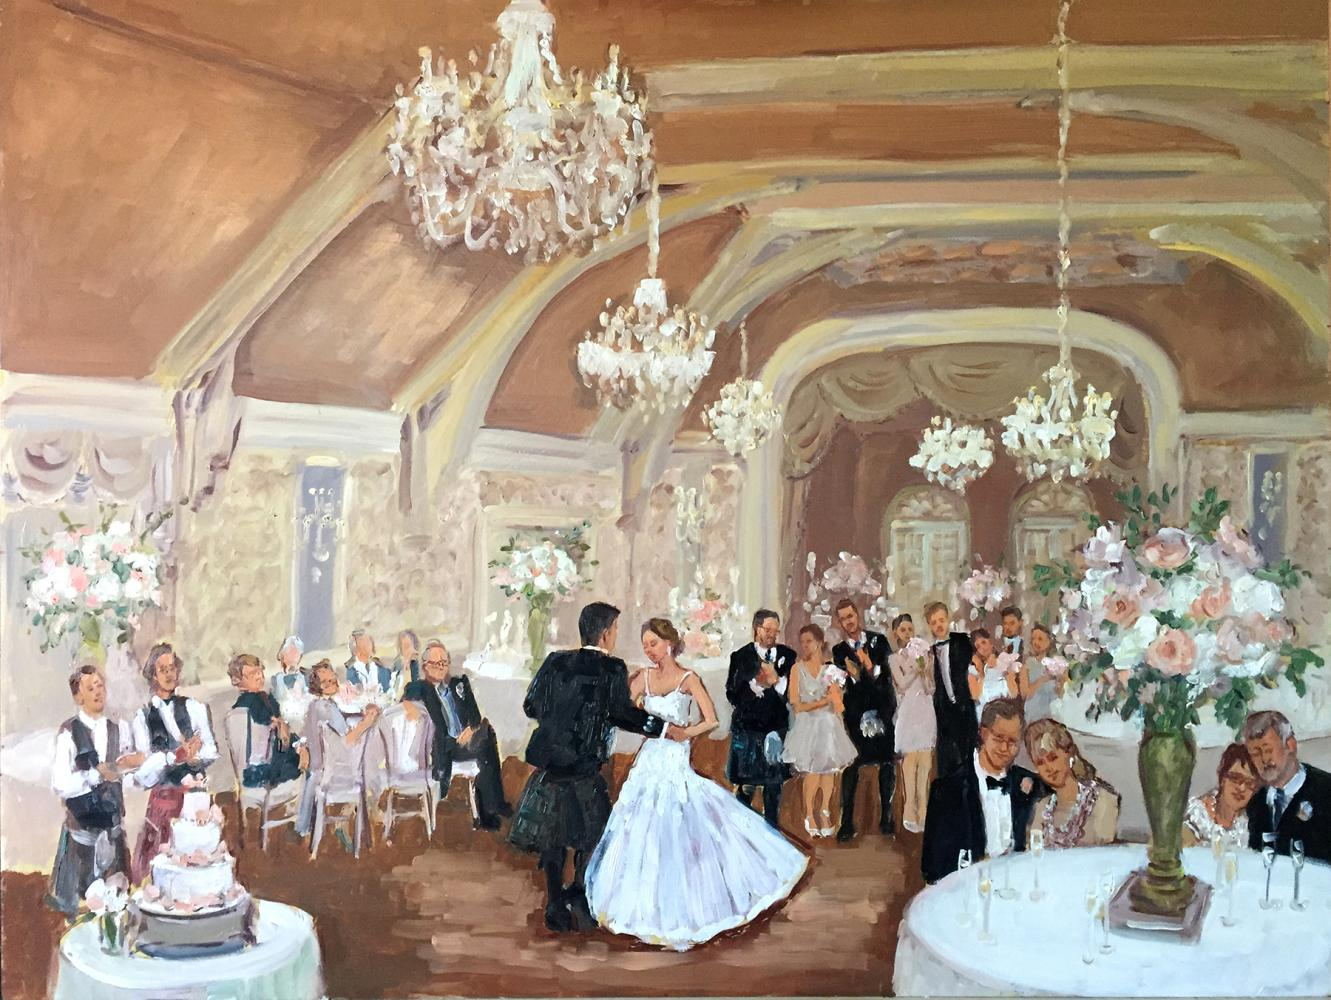 Live event painting at Merion Cricket Club wedding